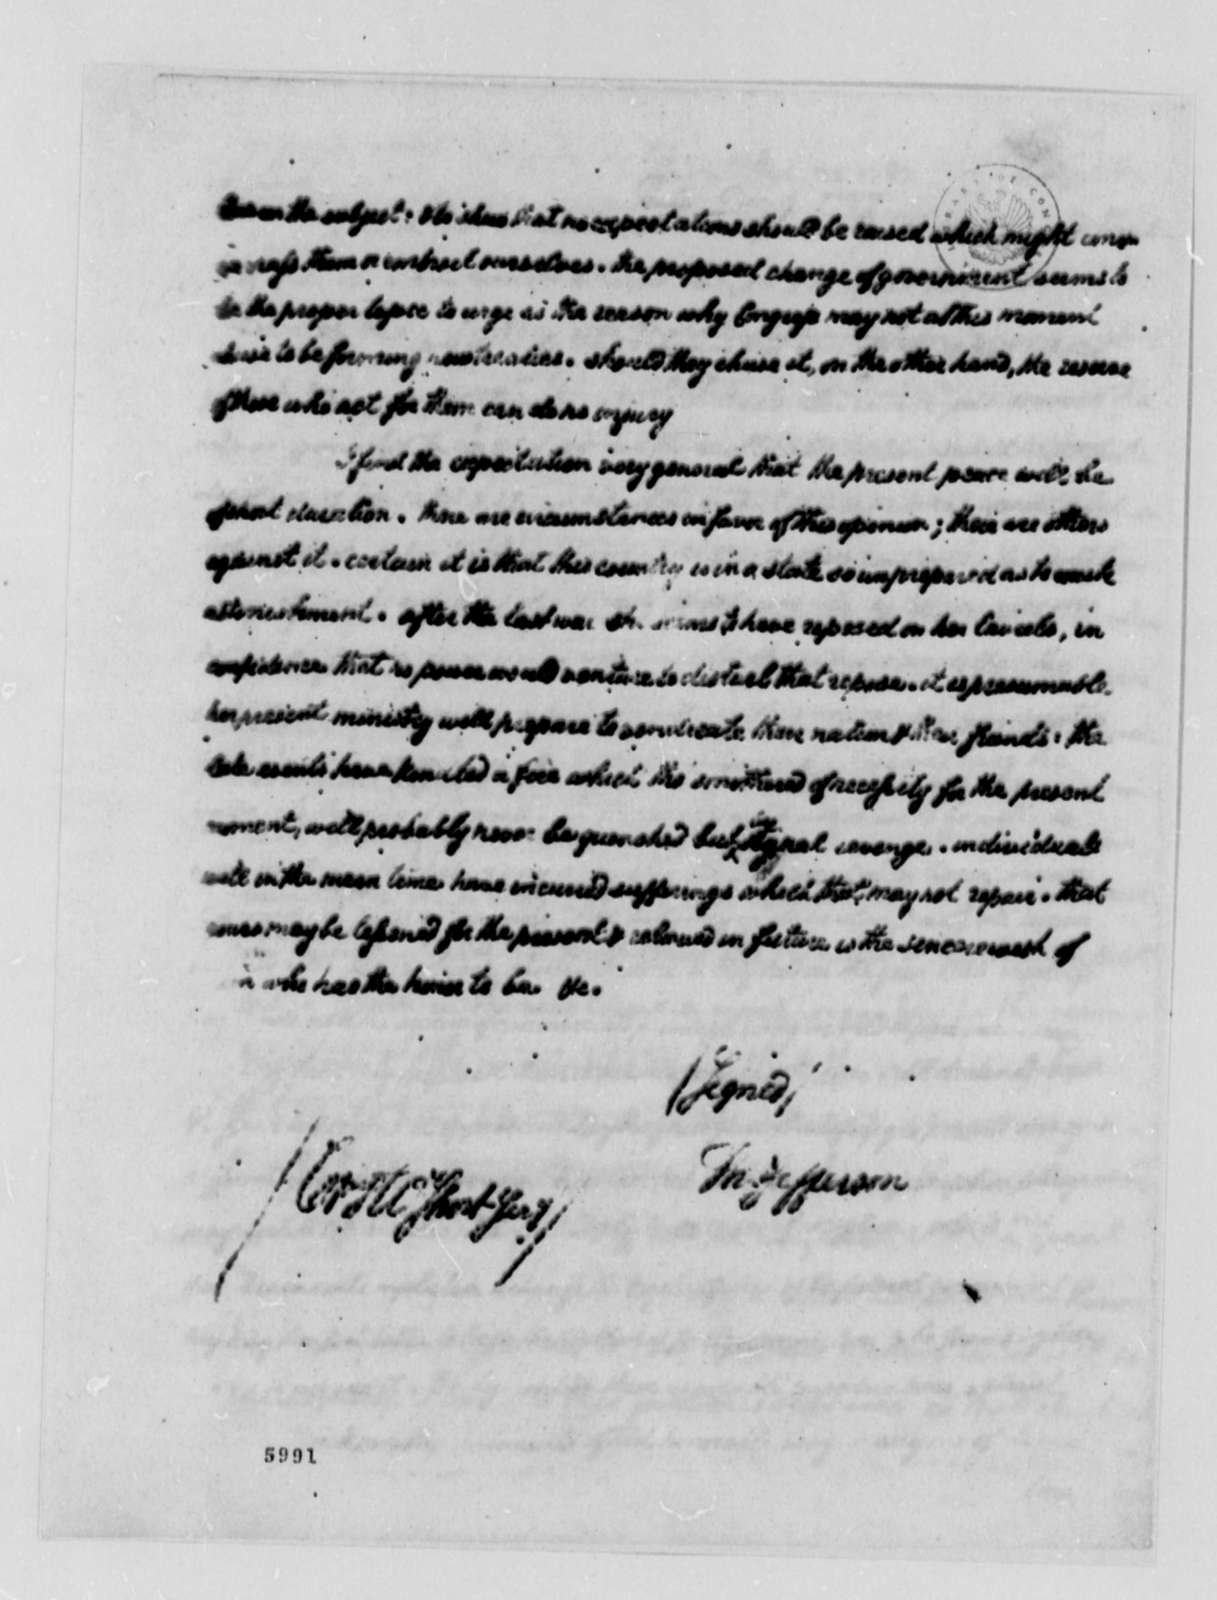 Thomas Jefferson to Charles William Frederic Dumas, December 9, 1787, with Copy